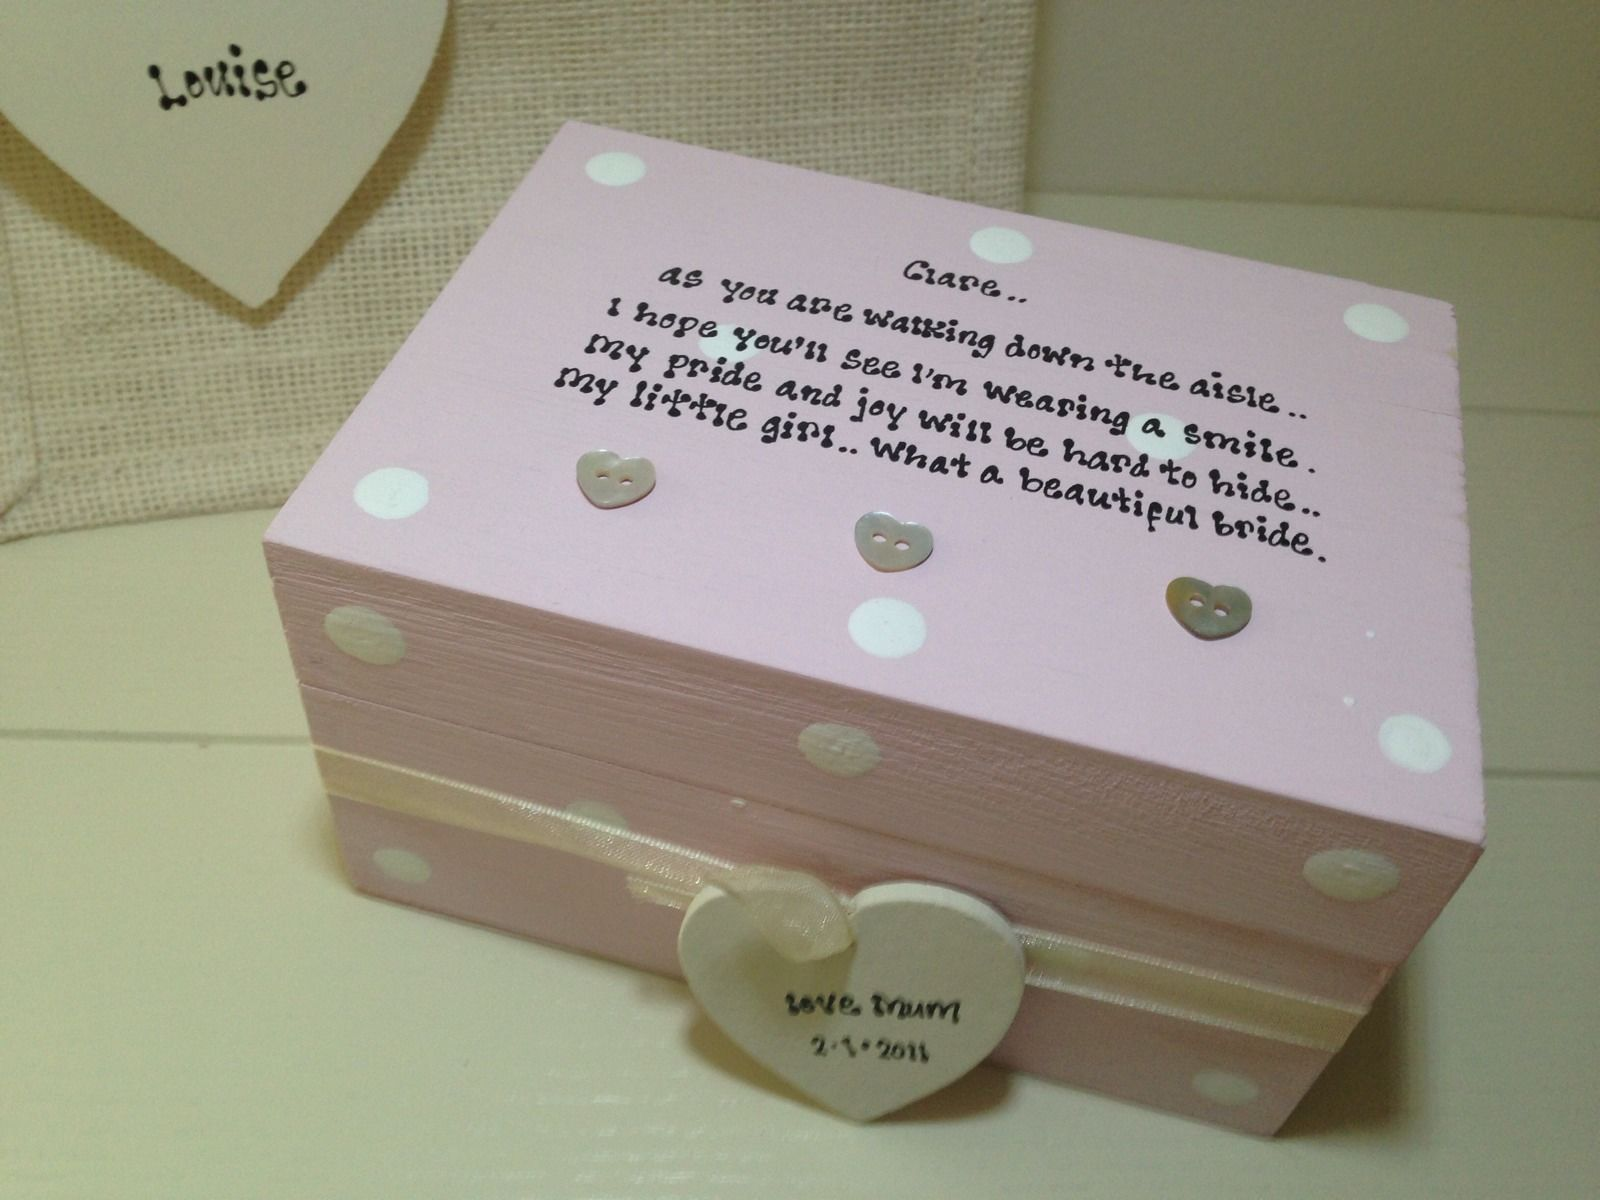 Special Wedding Gifts For Son And Daughter In Law : Ideas Gifts From Mother To Daughter On Wedding Day shabby personalised ...